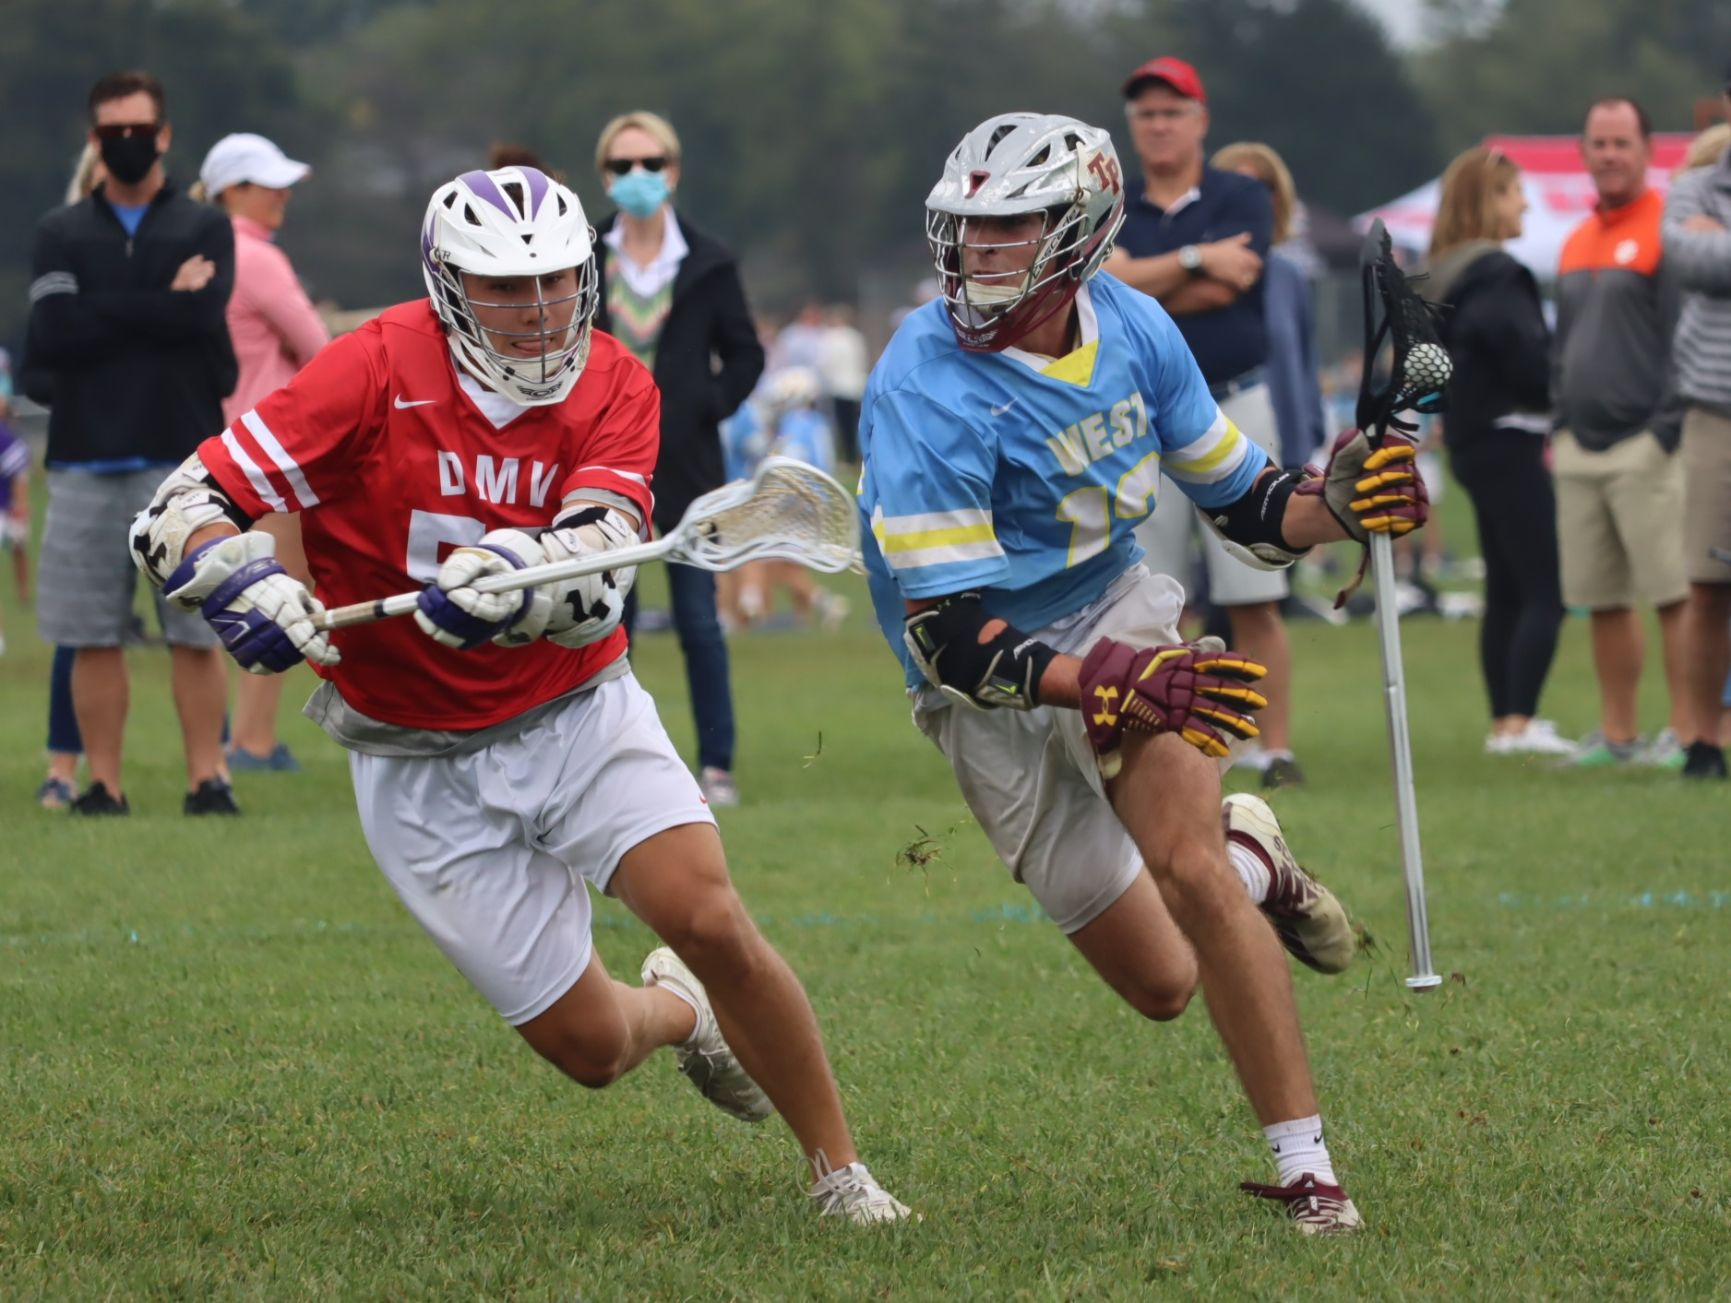 Miles Botkis, 2021 Standout Lacrosse Player at The National All Star Games